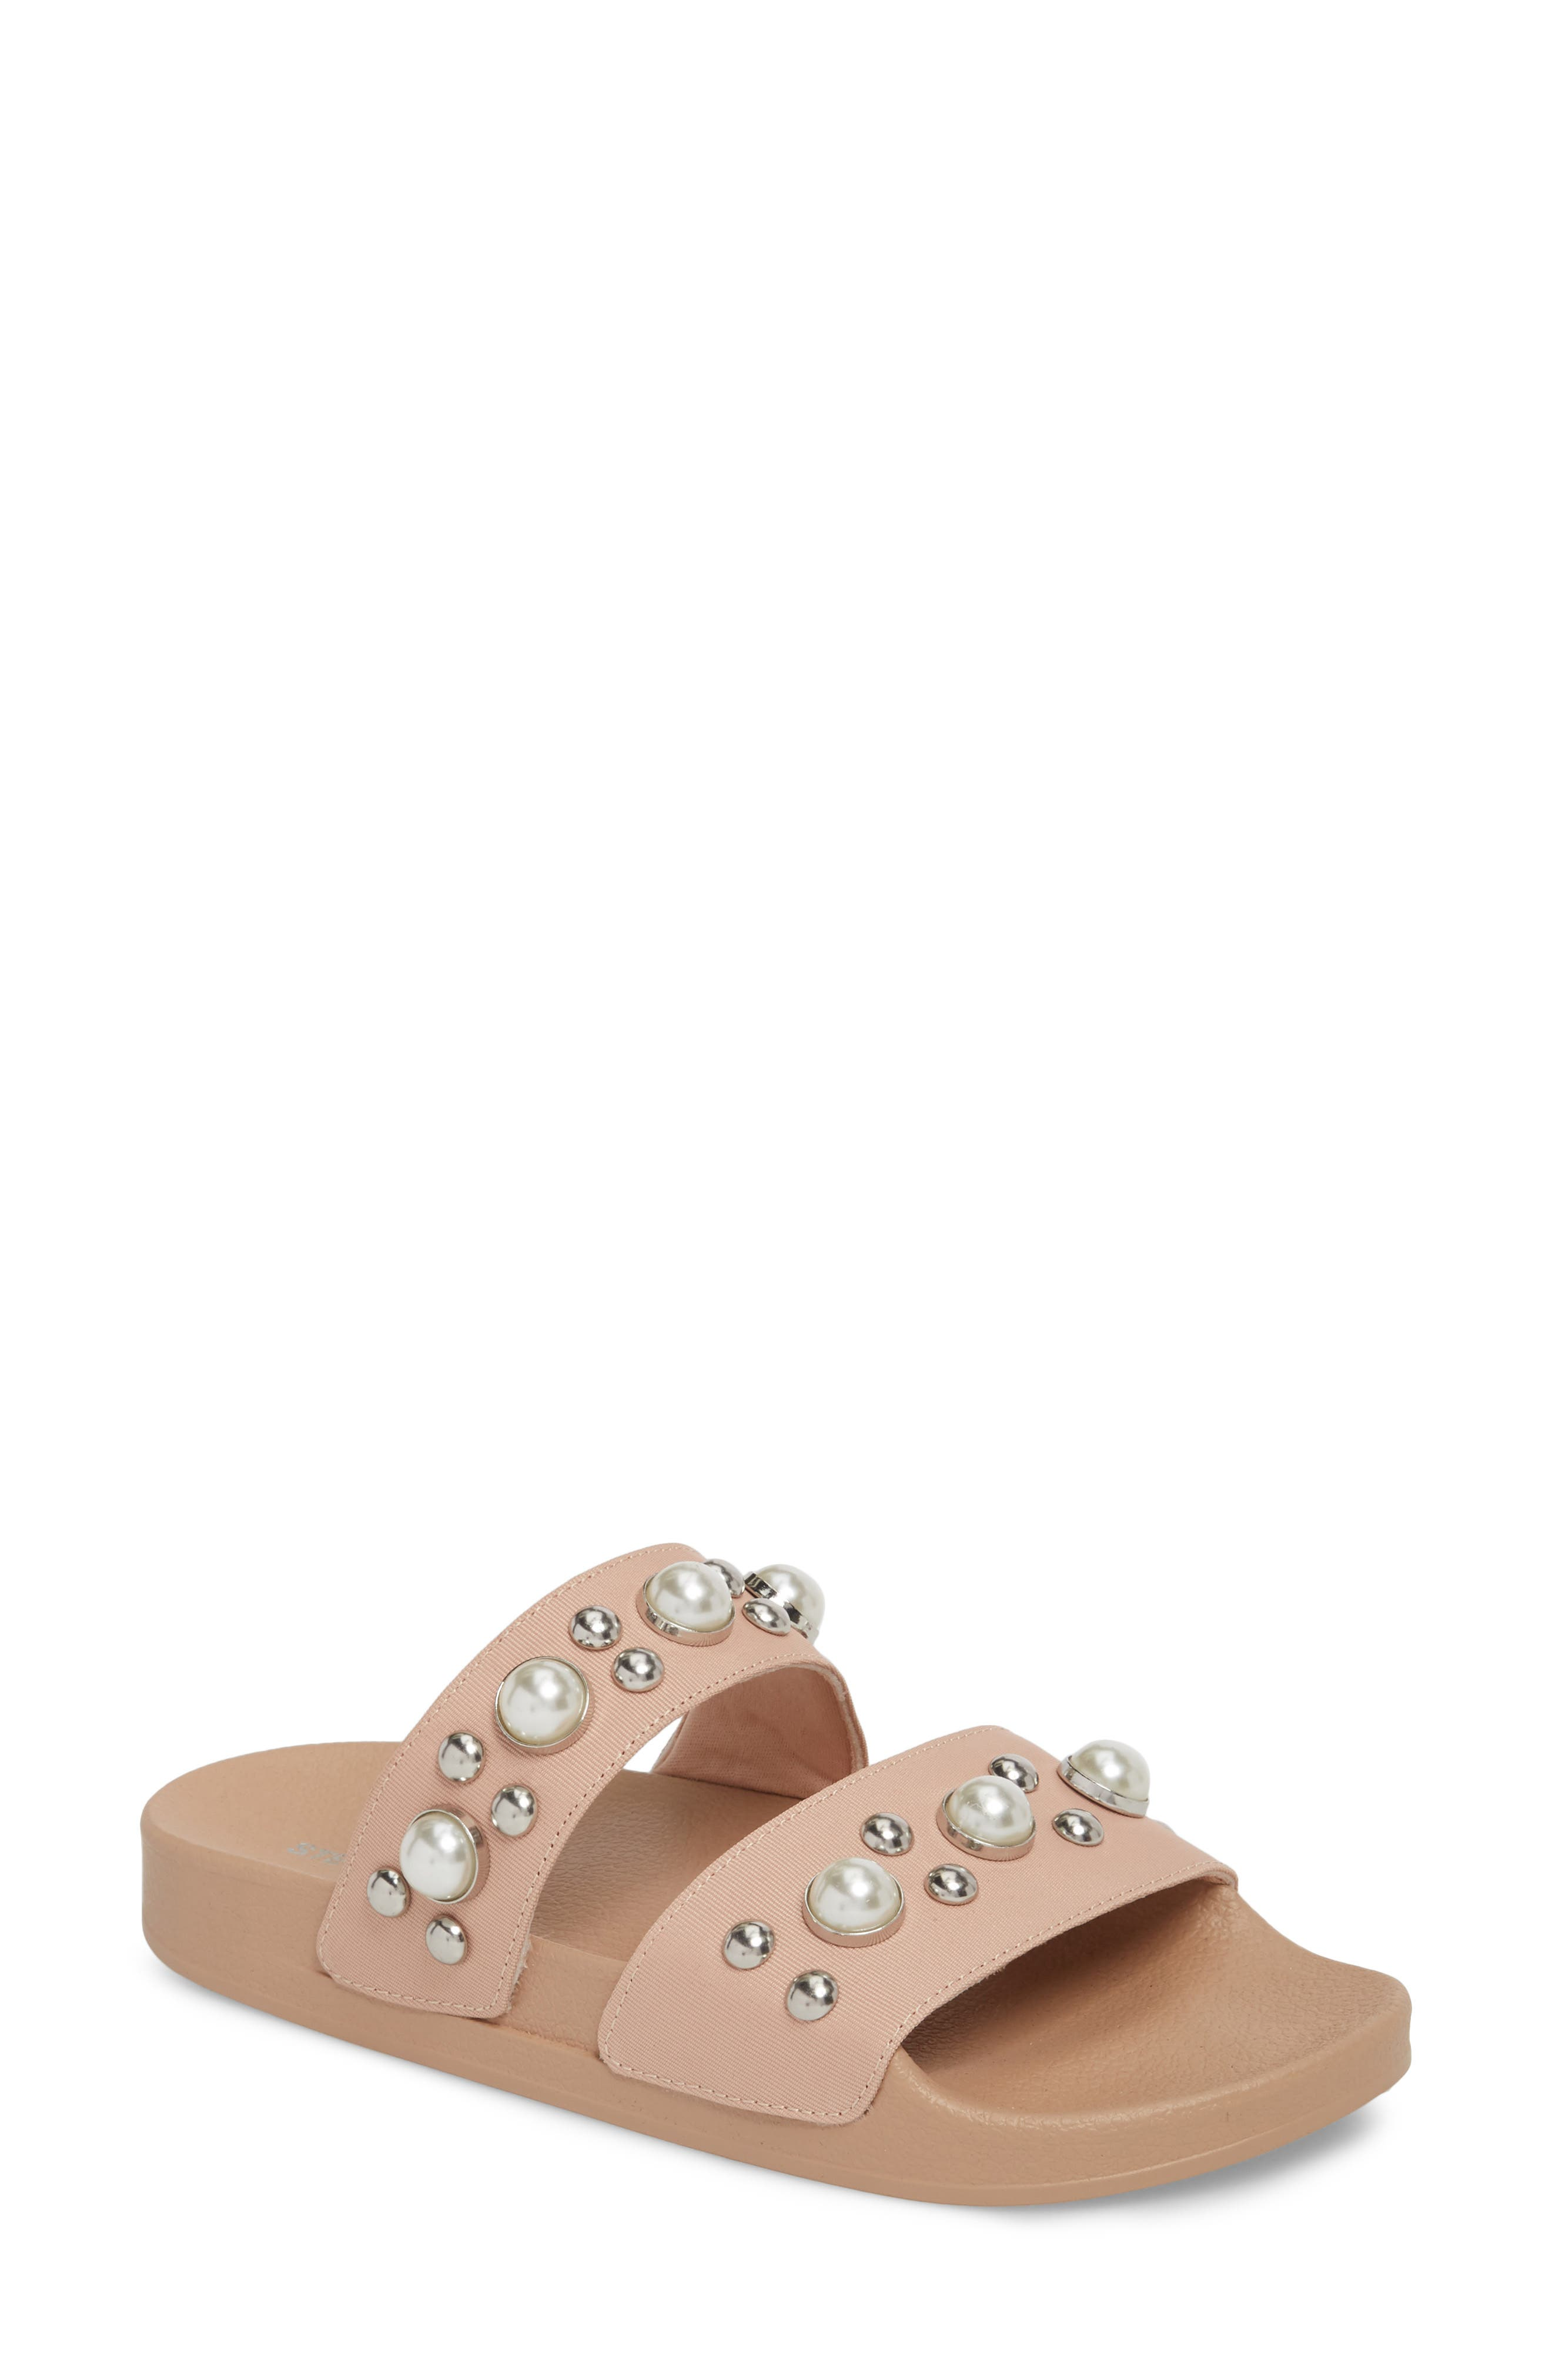 Polite Embellished Slide Sandal,                         Main,                         color, Blush